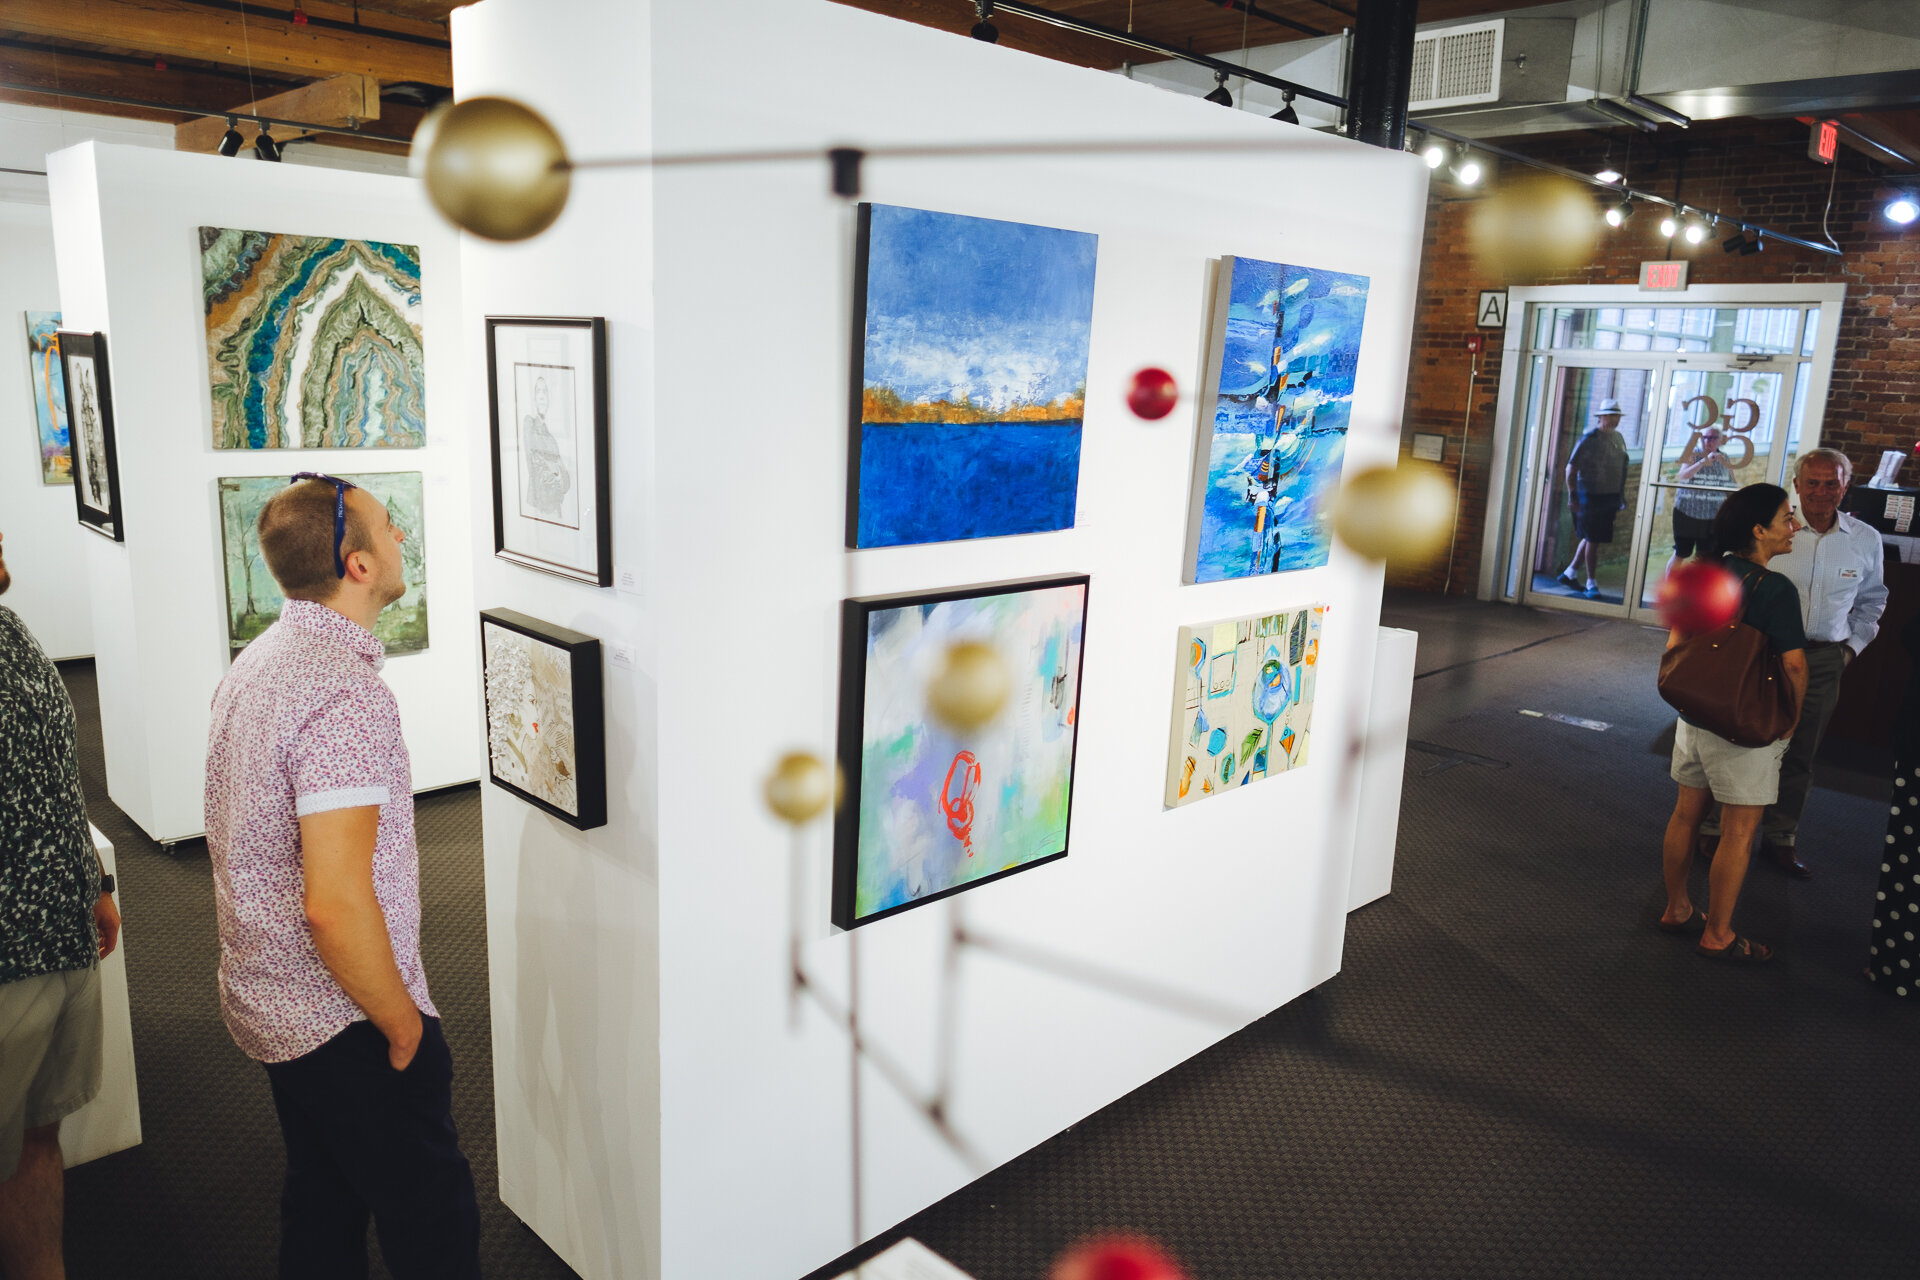 - GCCA ANNUAL SHOWCASEAUGUST 2 - SEPTEMBER 25, 2019The GCCA Annual Showcase included the 2019 Member Show, 2018-2019 Brandon Fellows Final Show, and Summer Art Camp Showcase.The Member Show features individual works of art done by current members of GCCA.This exhibition is open to current GCCA Members, the annual Member Show provides an opportunity for the community to see the breadth and depth of work being created by supporting members of GCCA.The Brandon Fellowship Final Show featured works by the 2018-19 Brandon Fellows Brittany Kelly, Angel Jenkins and Elliot Lovegrove.Sponsored by Greenwood Capital